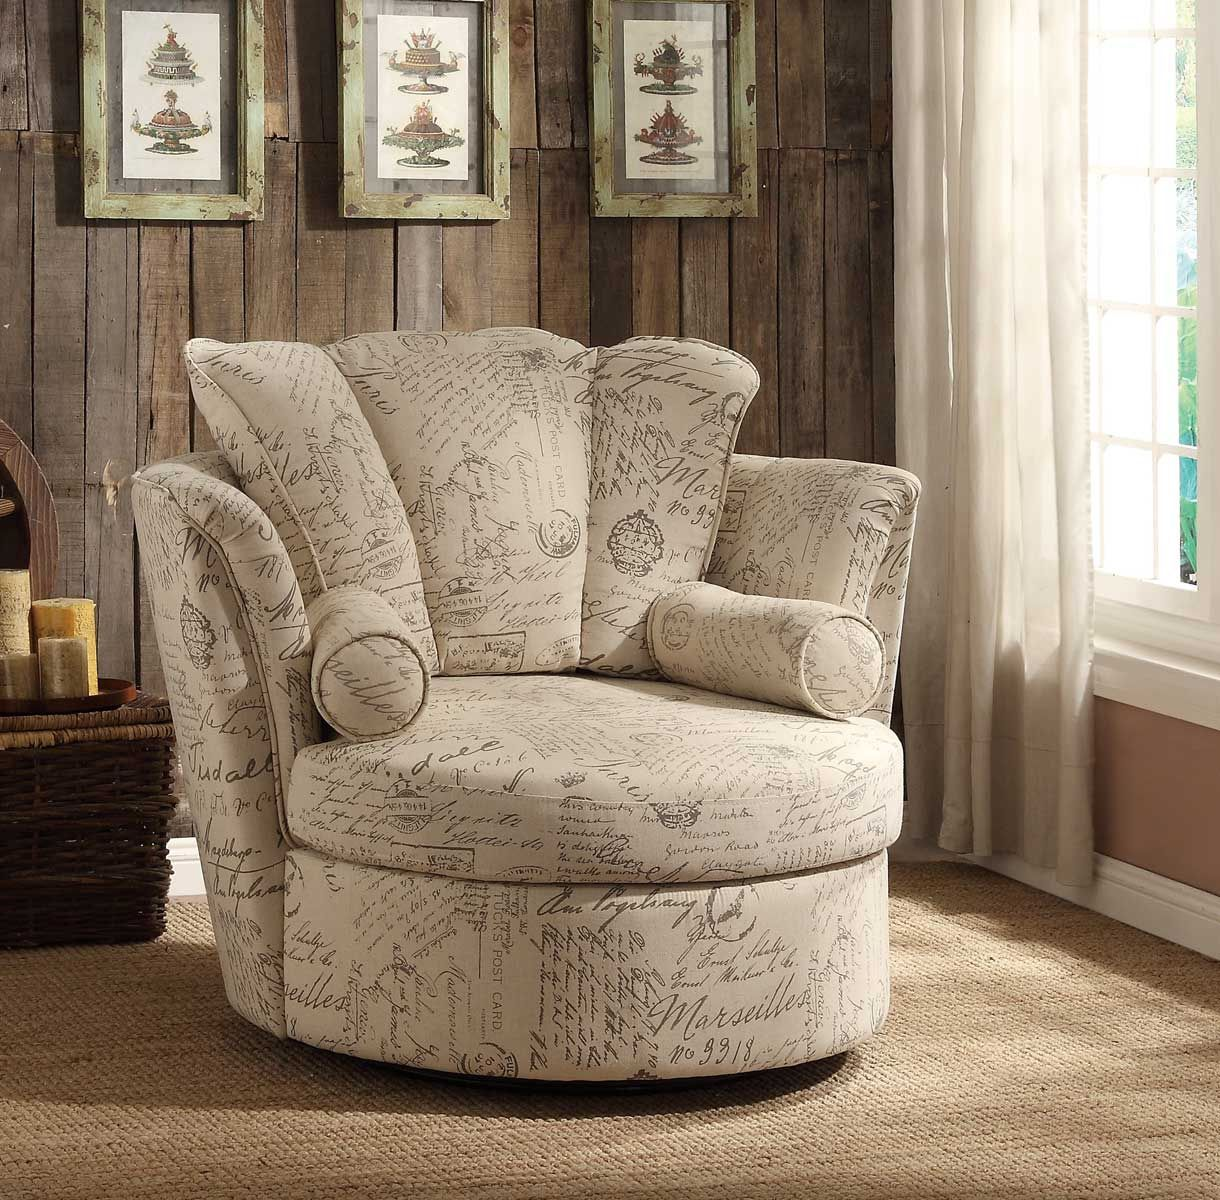 20 Round Swivel Accent Chair Best Way To Paint